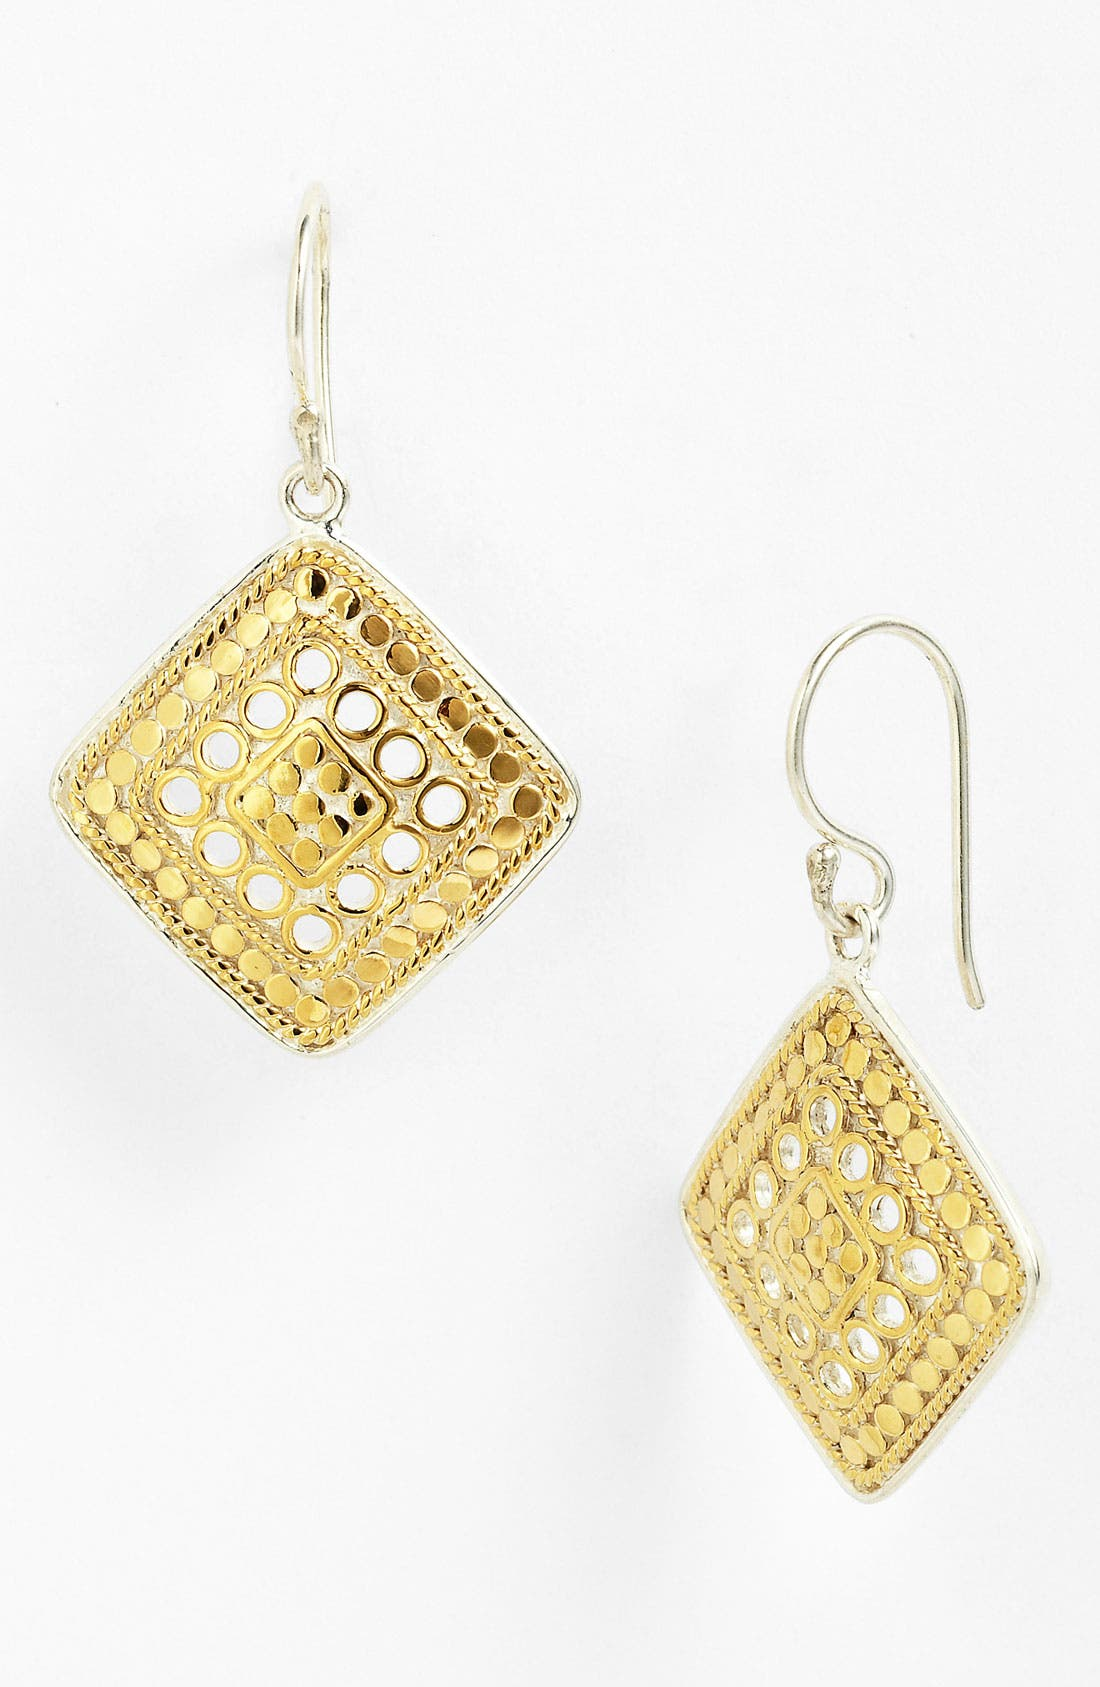 Alternate Image 1 Selected - Anna Beck 'Gili' Wire Rimmed Drop Earrings (Nordstrom Exclusive)